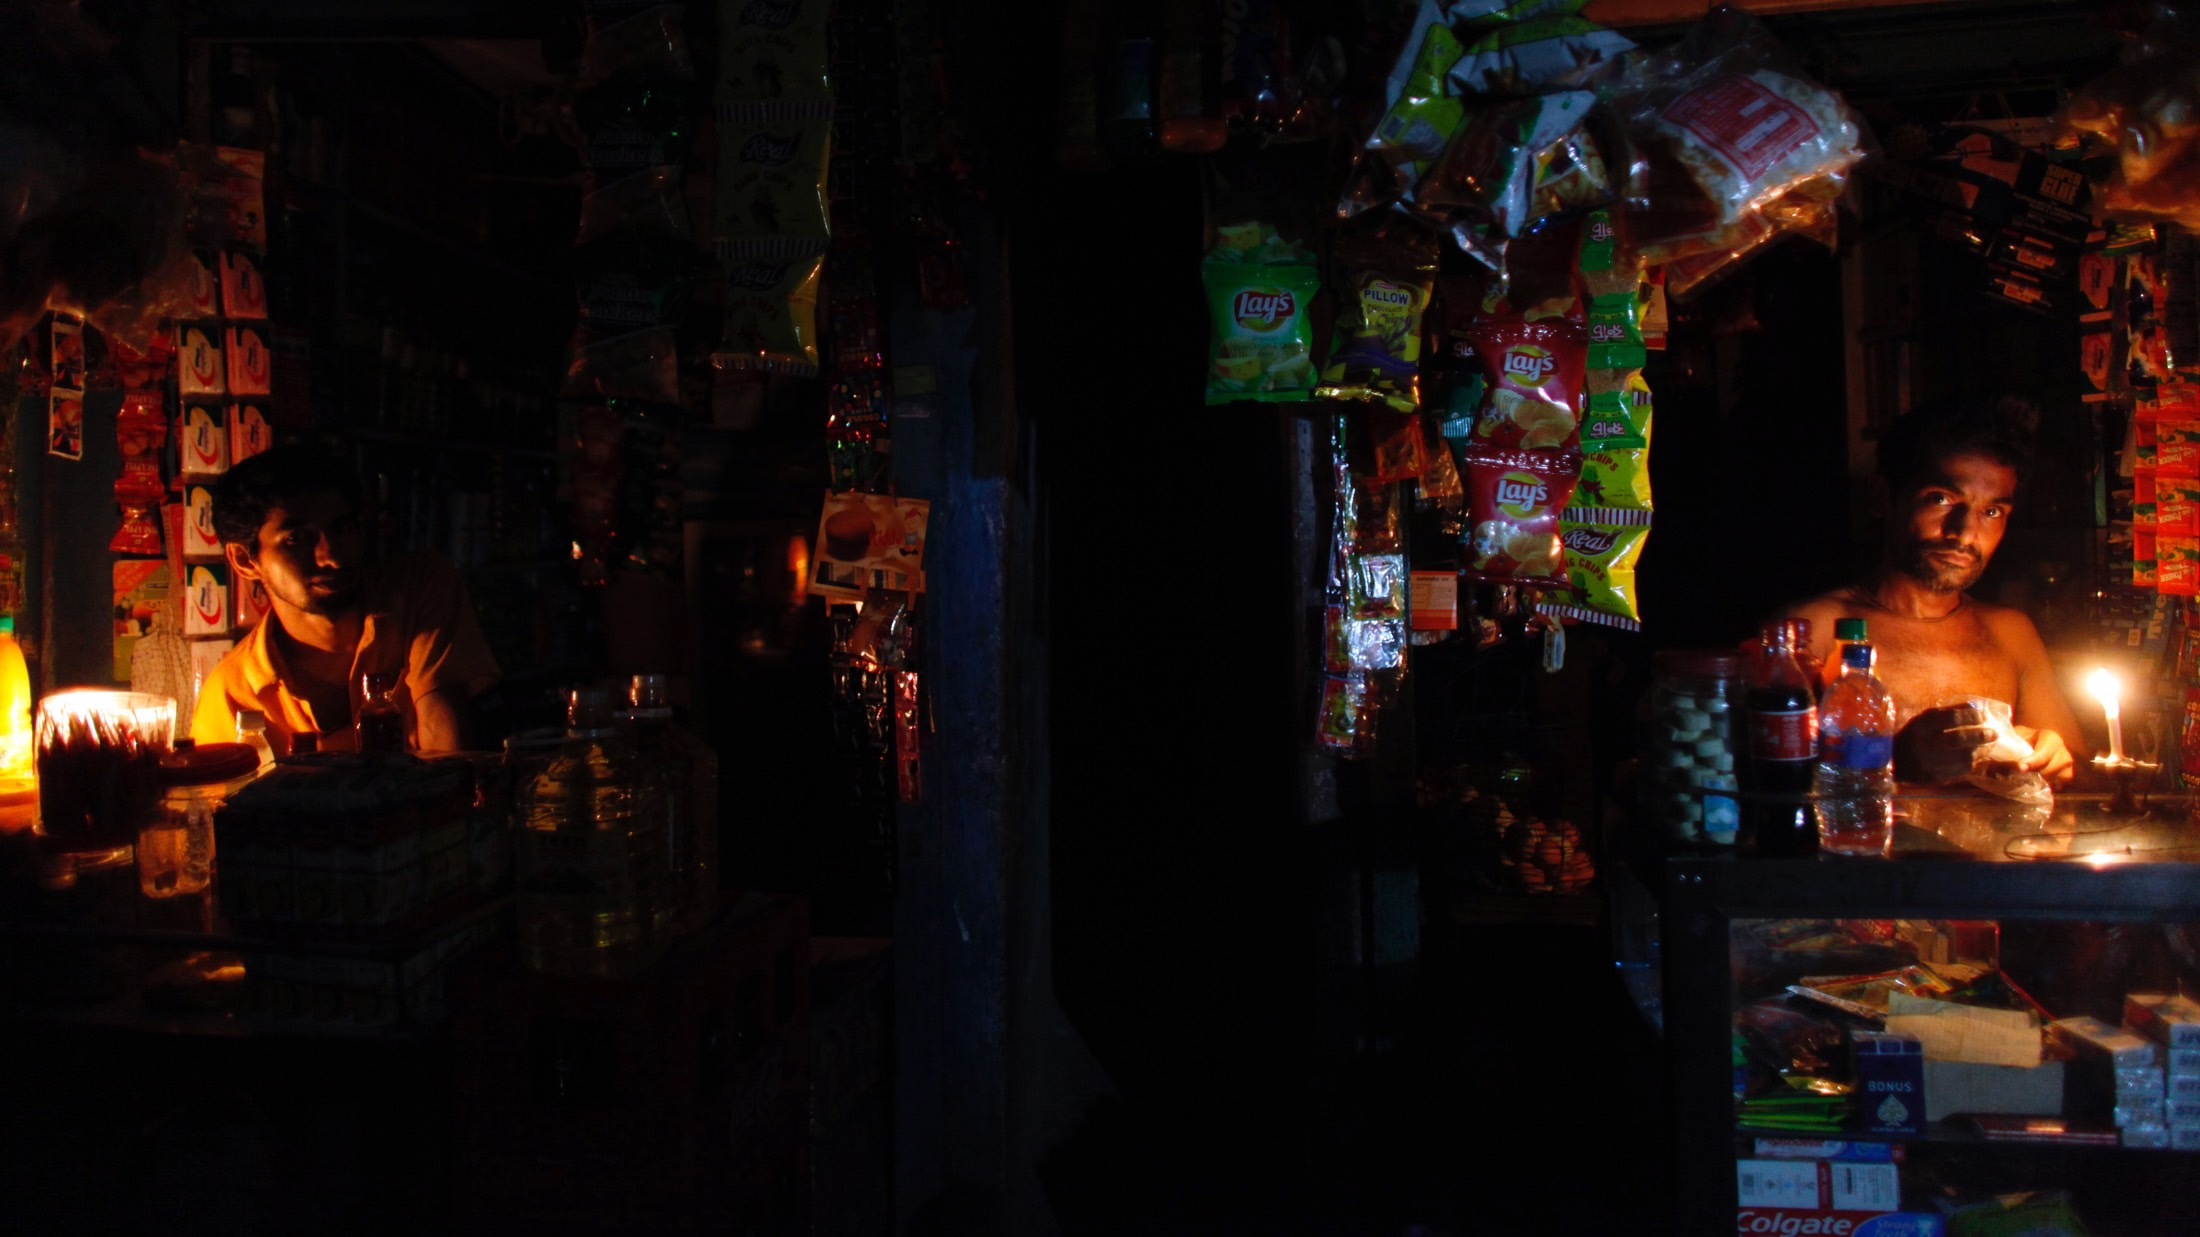 Vendors work in roadside shops during a power cut in an old part of Dhaka